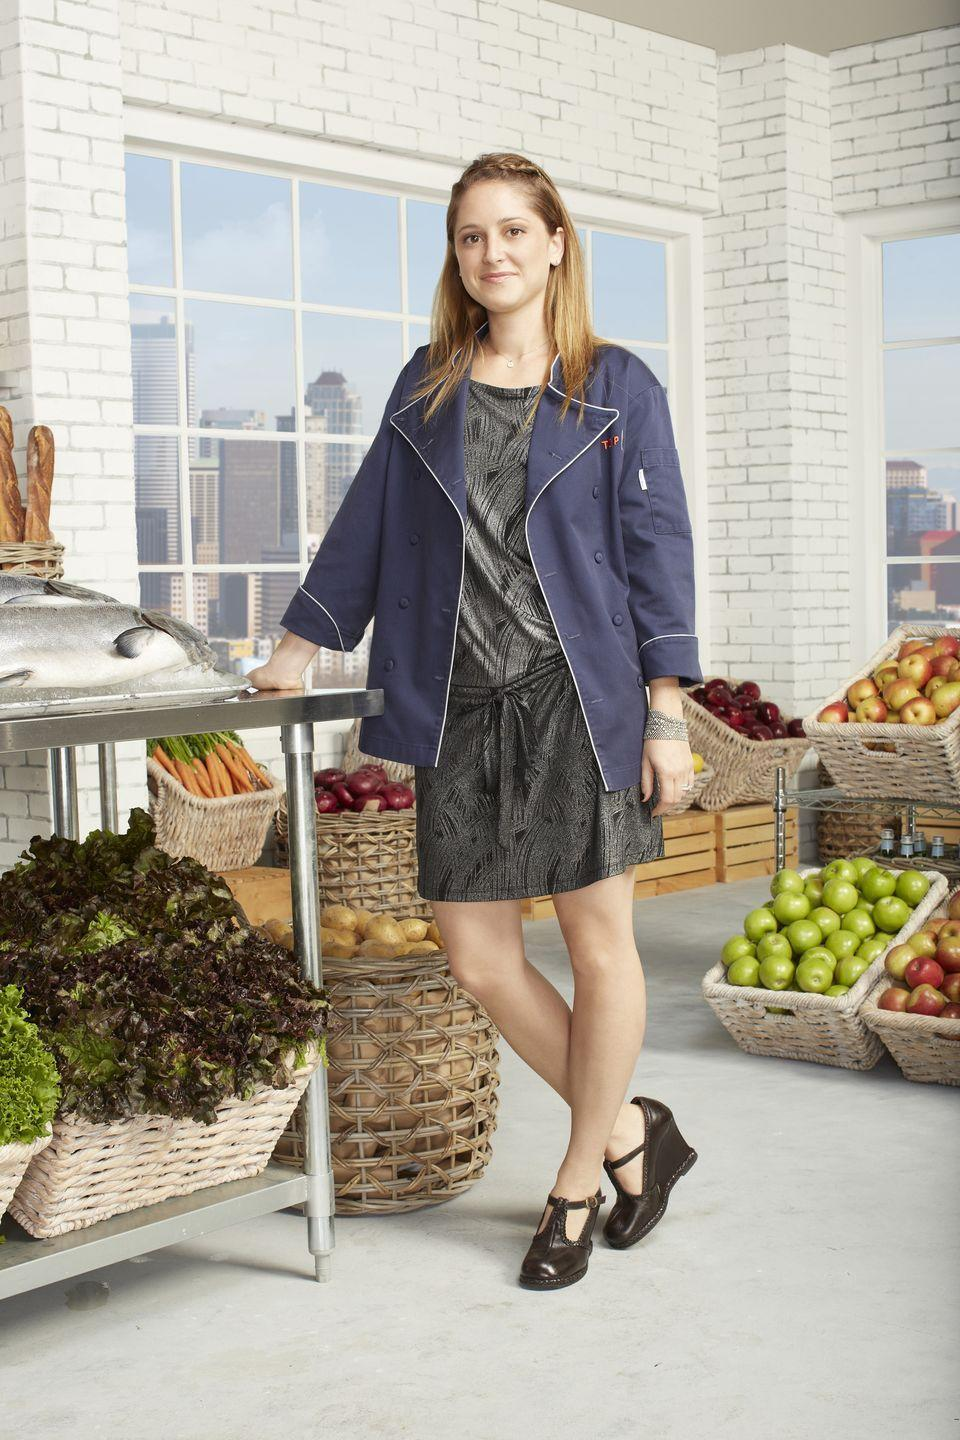 <p>The Los Angeles chef joined the cast of <em>Top Chef: Seattle </em>in 2012, where she came in second. Four years later, Brooke returned to the show for season 14 to take home the championship prize. </p>